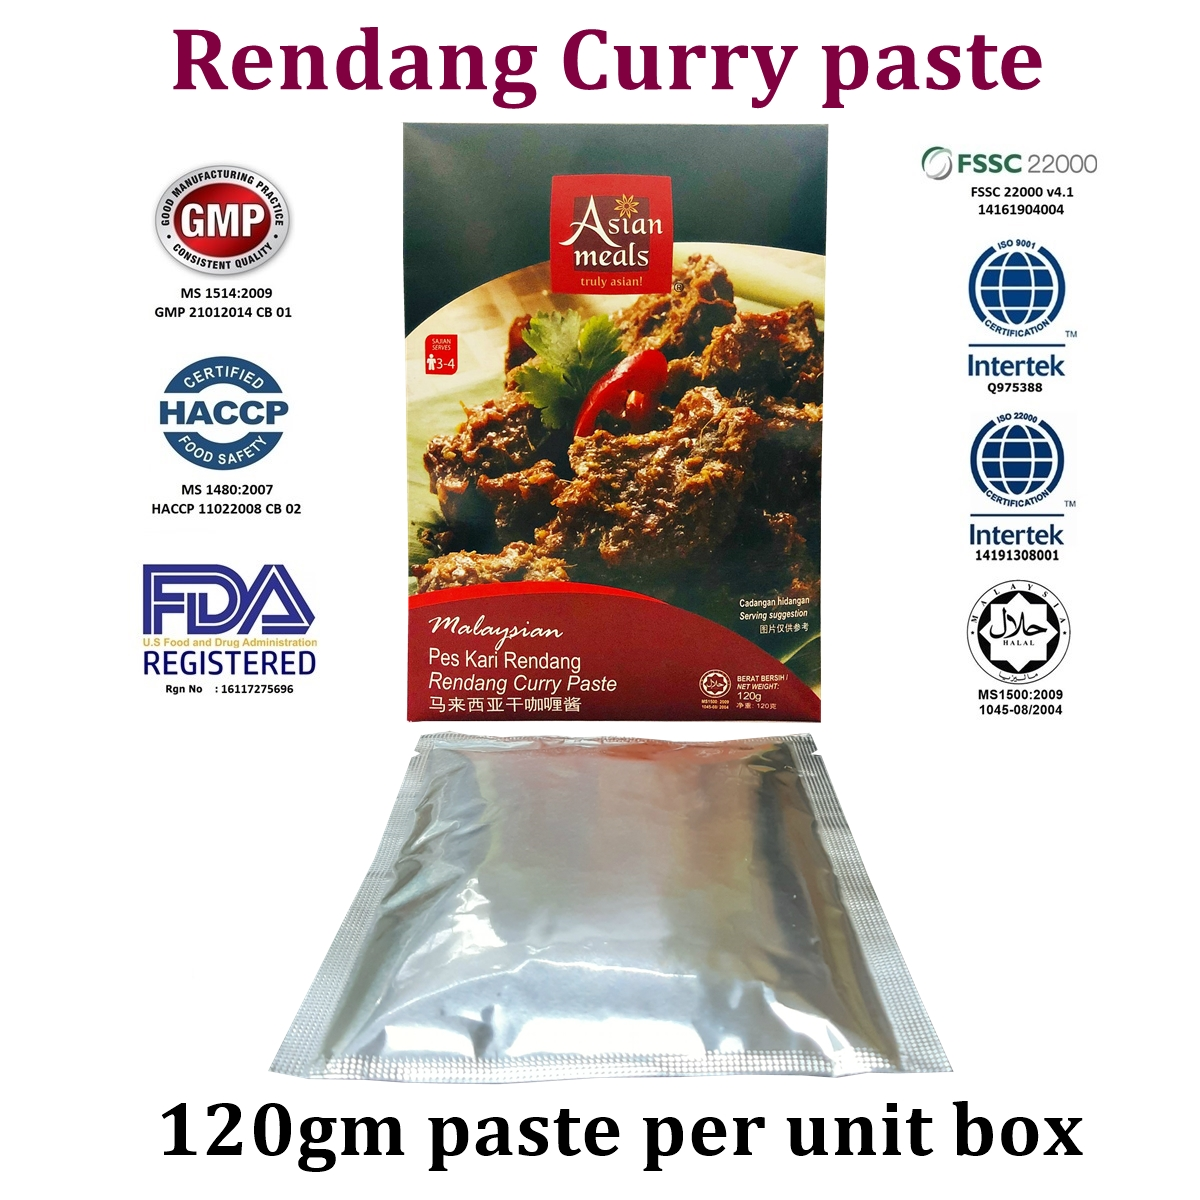 AsianMeals® Rendang Curry paste 120gm